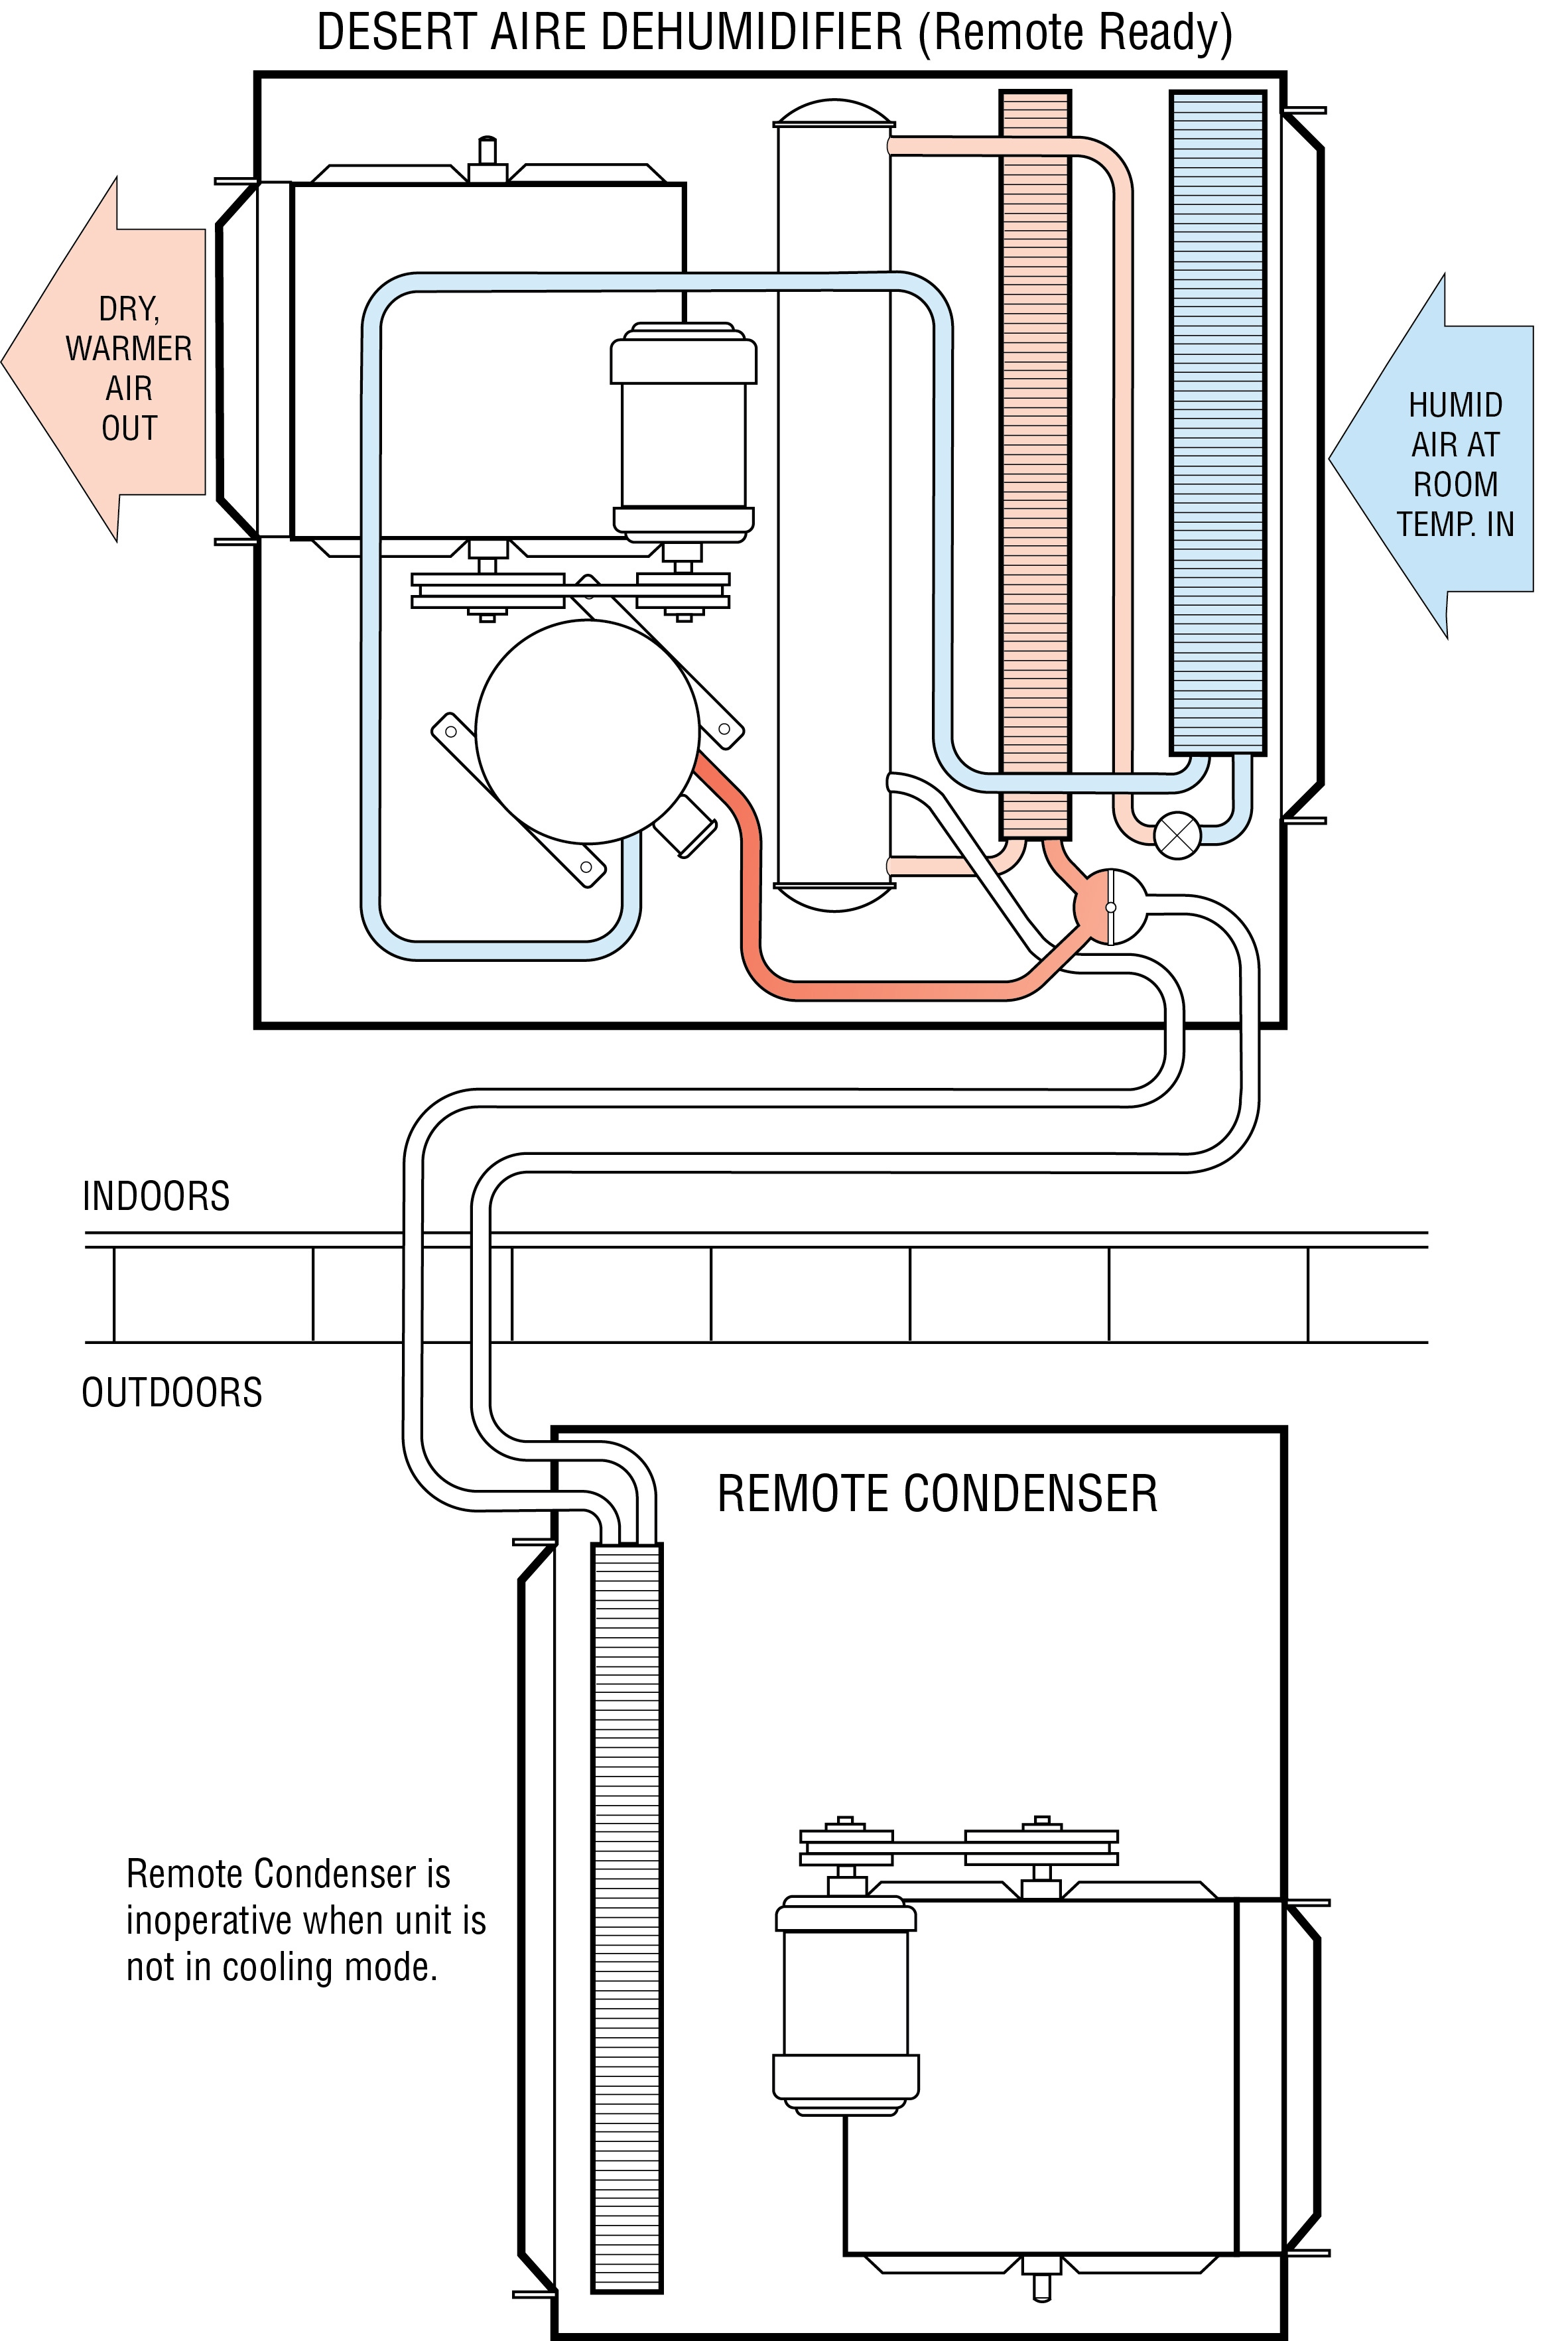 Desert Aire Units Unichip Wiring Diagram Figure Remote Ready Model With Condenser Off In Reheat Mode 2364x3529